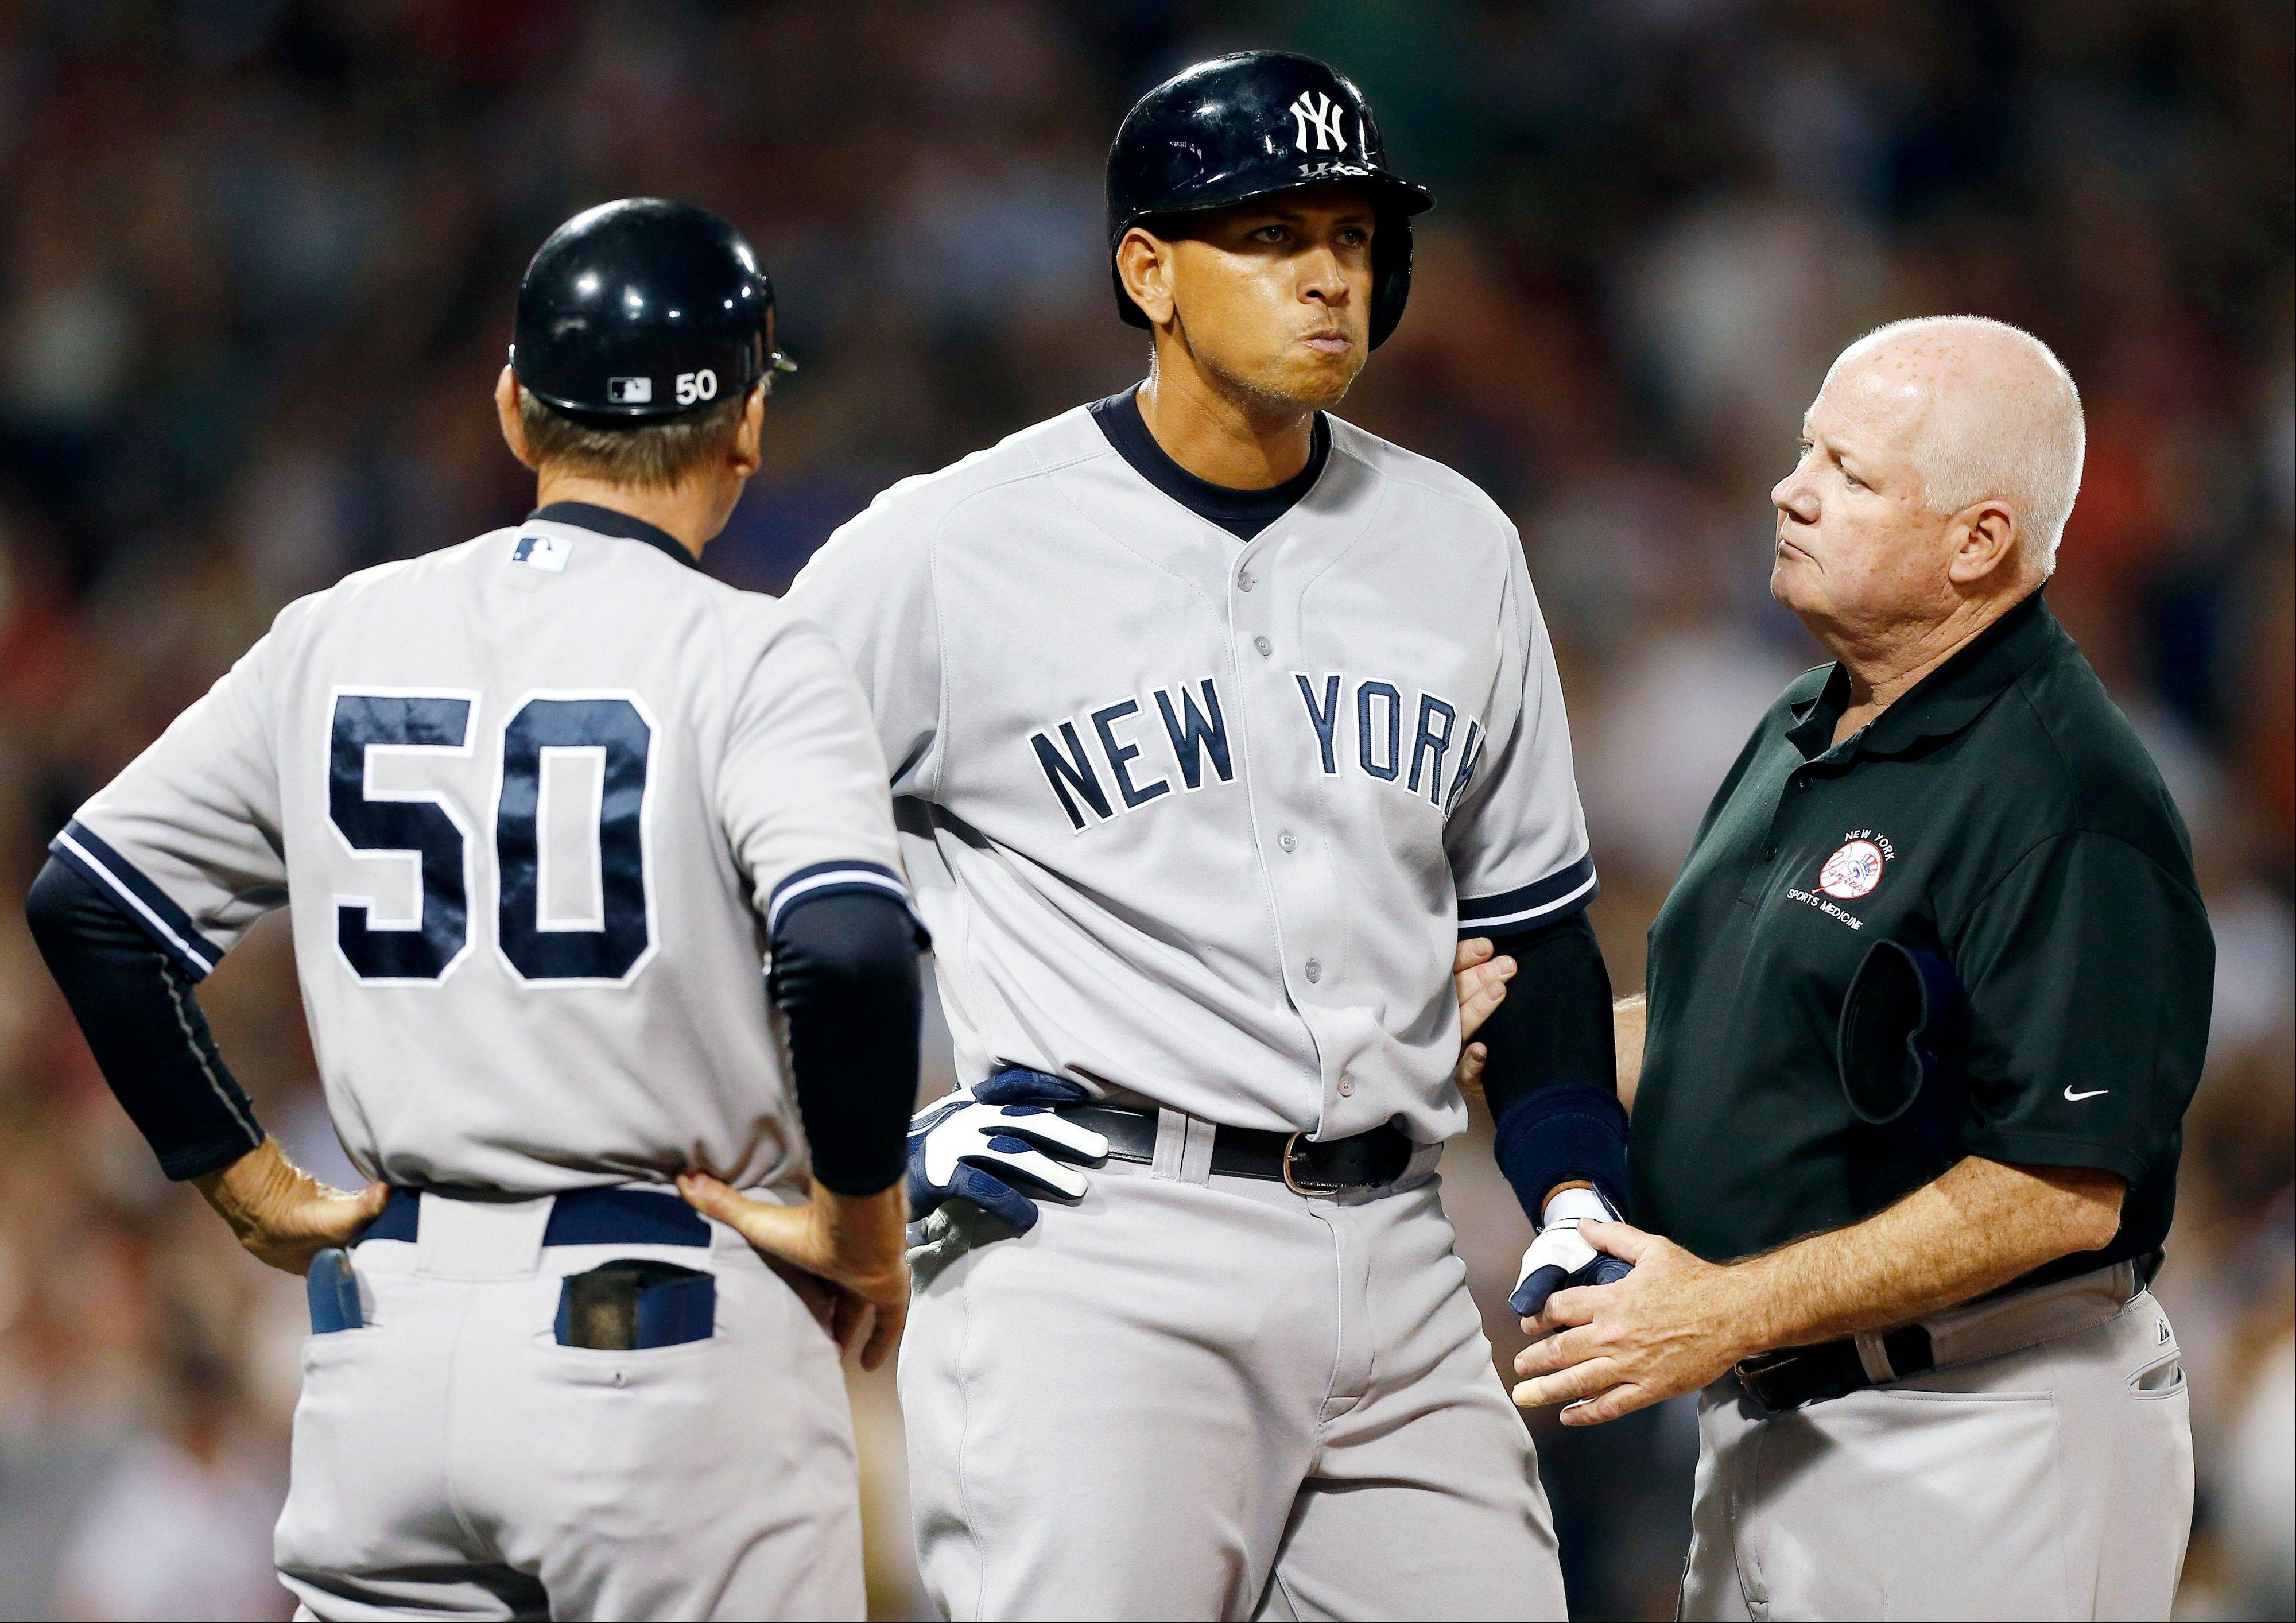 Alex Rodriguez, center, is tended to by a trainer at first base after being hit by a pitch from Red Sox pitcher Ryan Dempster in the second inning of Sunday�s game in Boston.